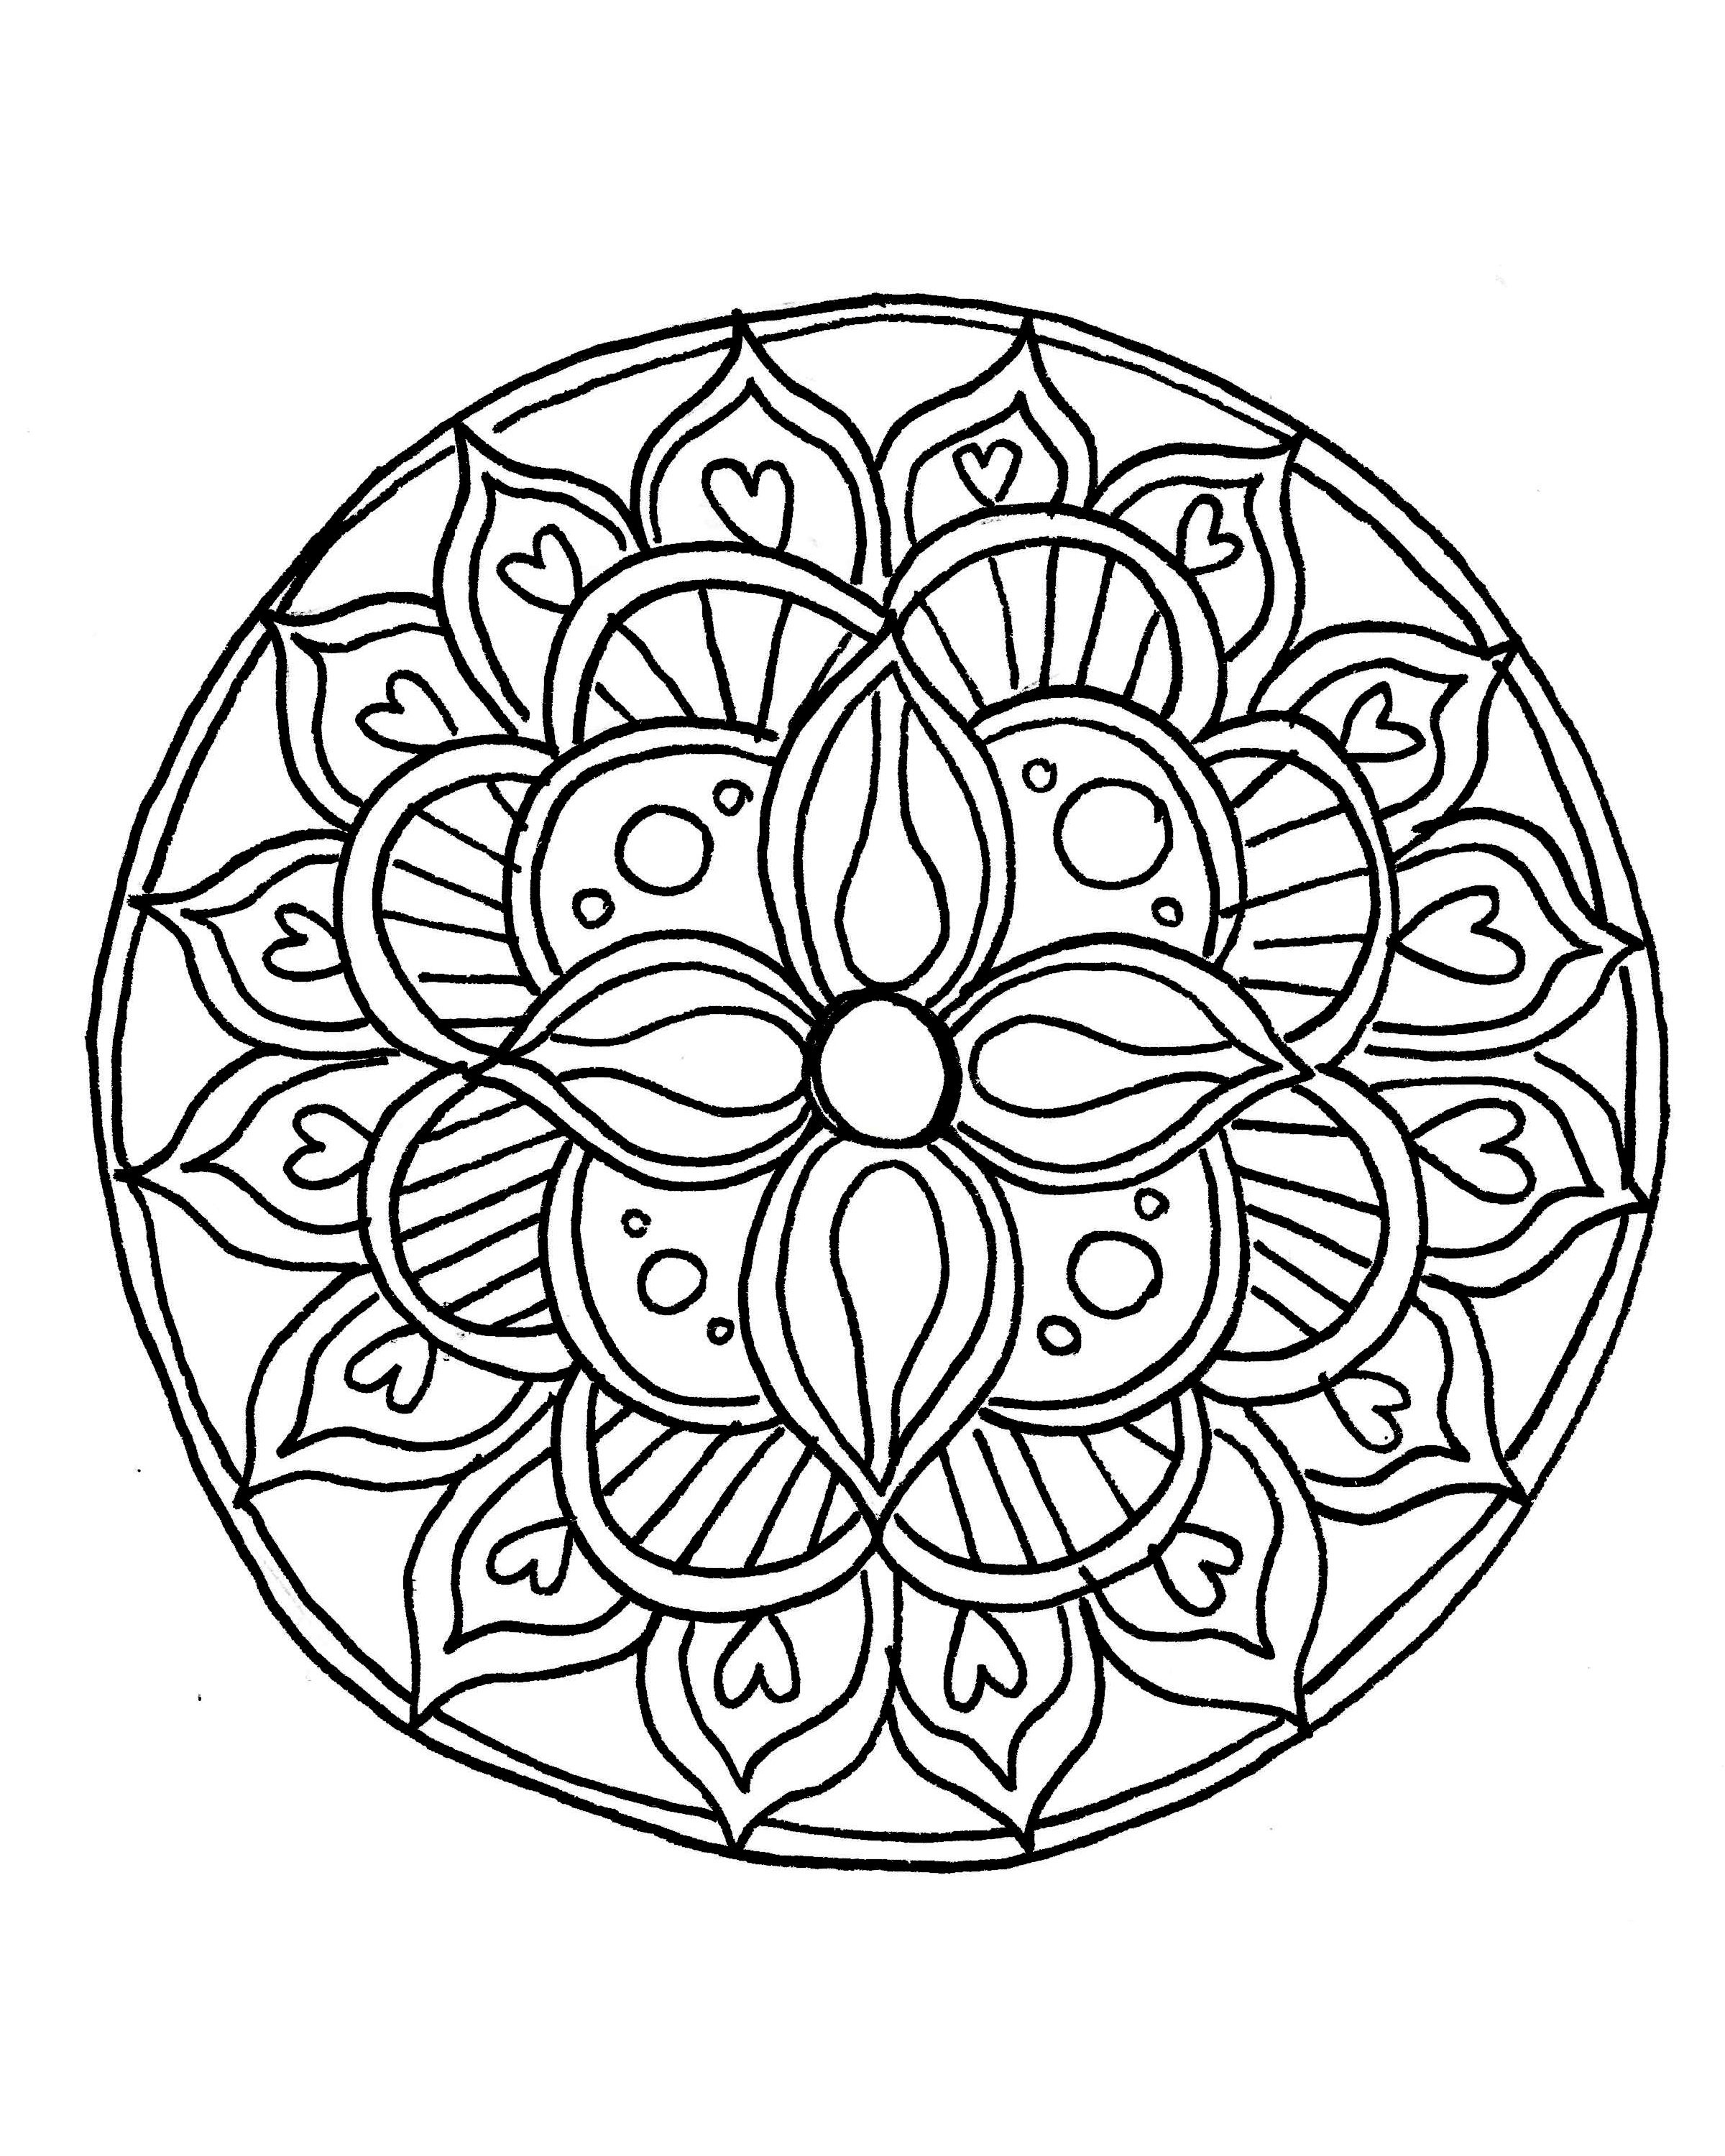 How To Draw A Mandala (With Free Coloring Pages!)   Drawings - Free Printable Mandala Patterns